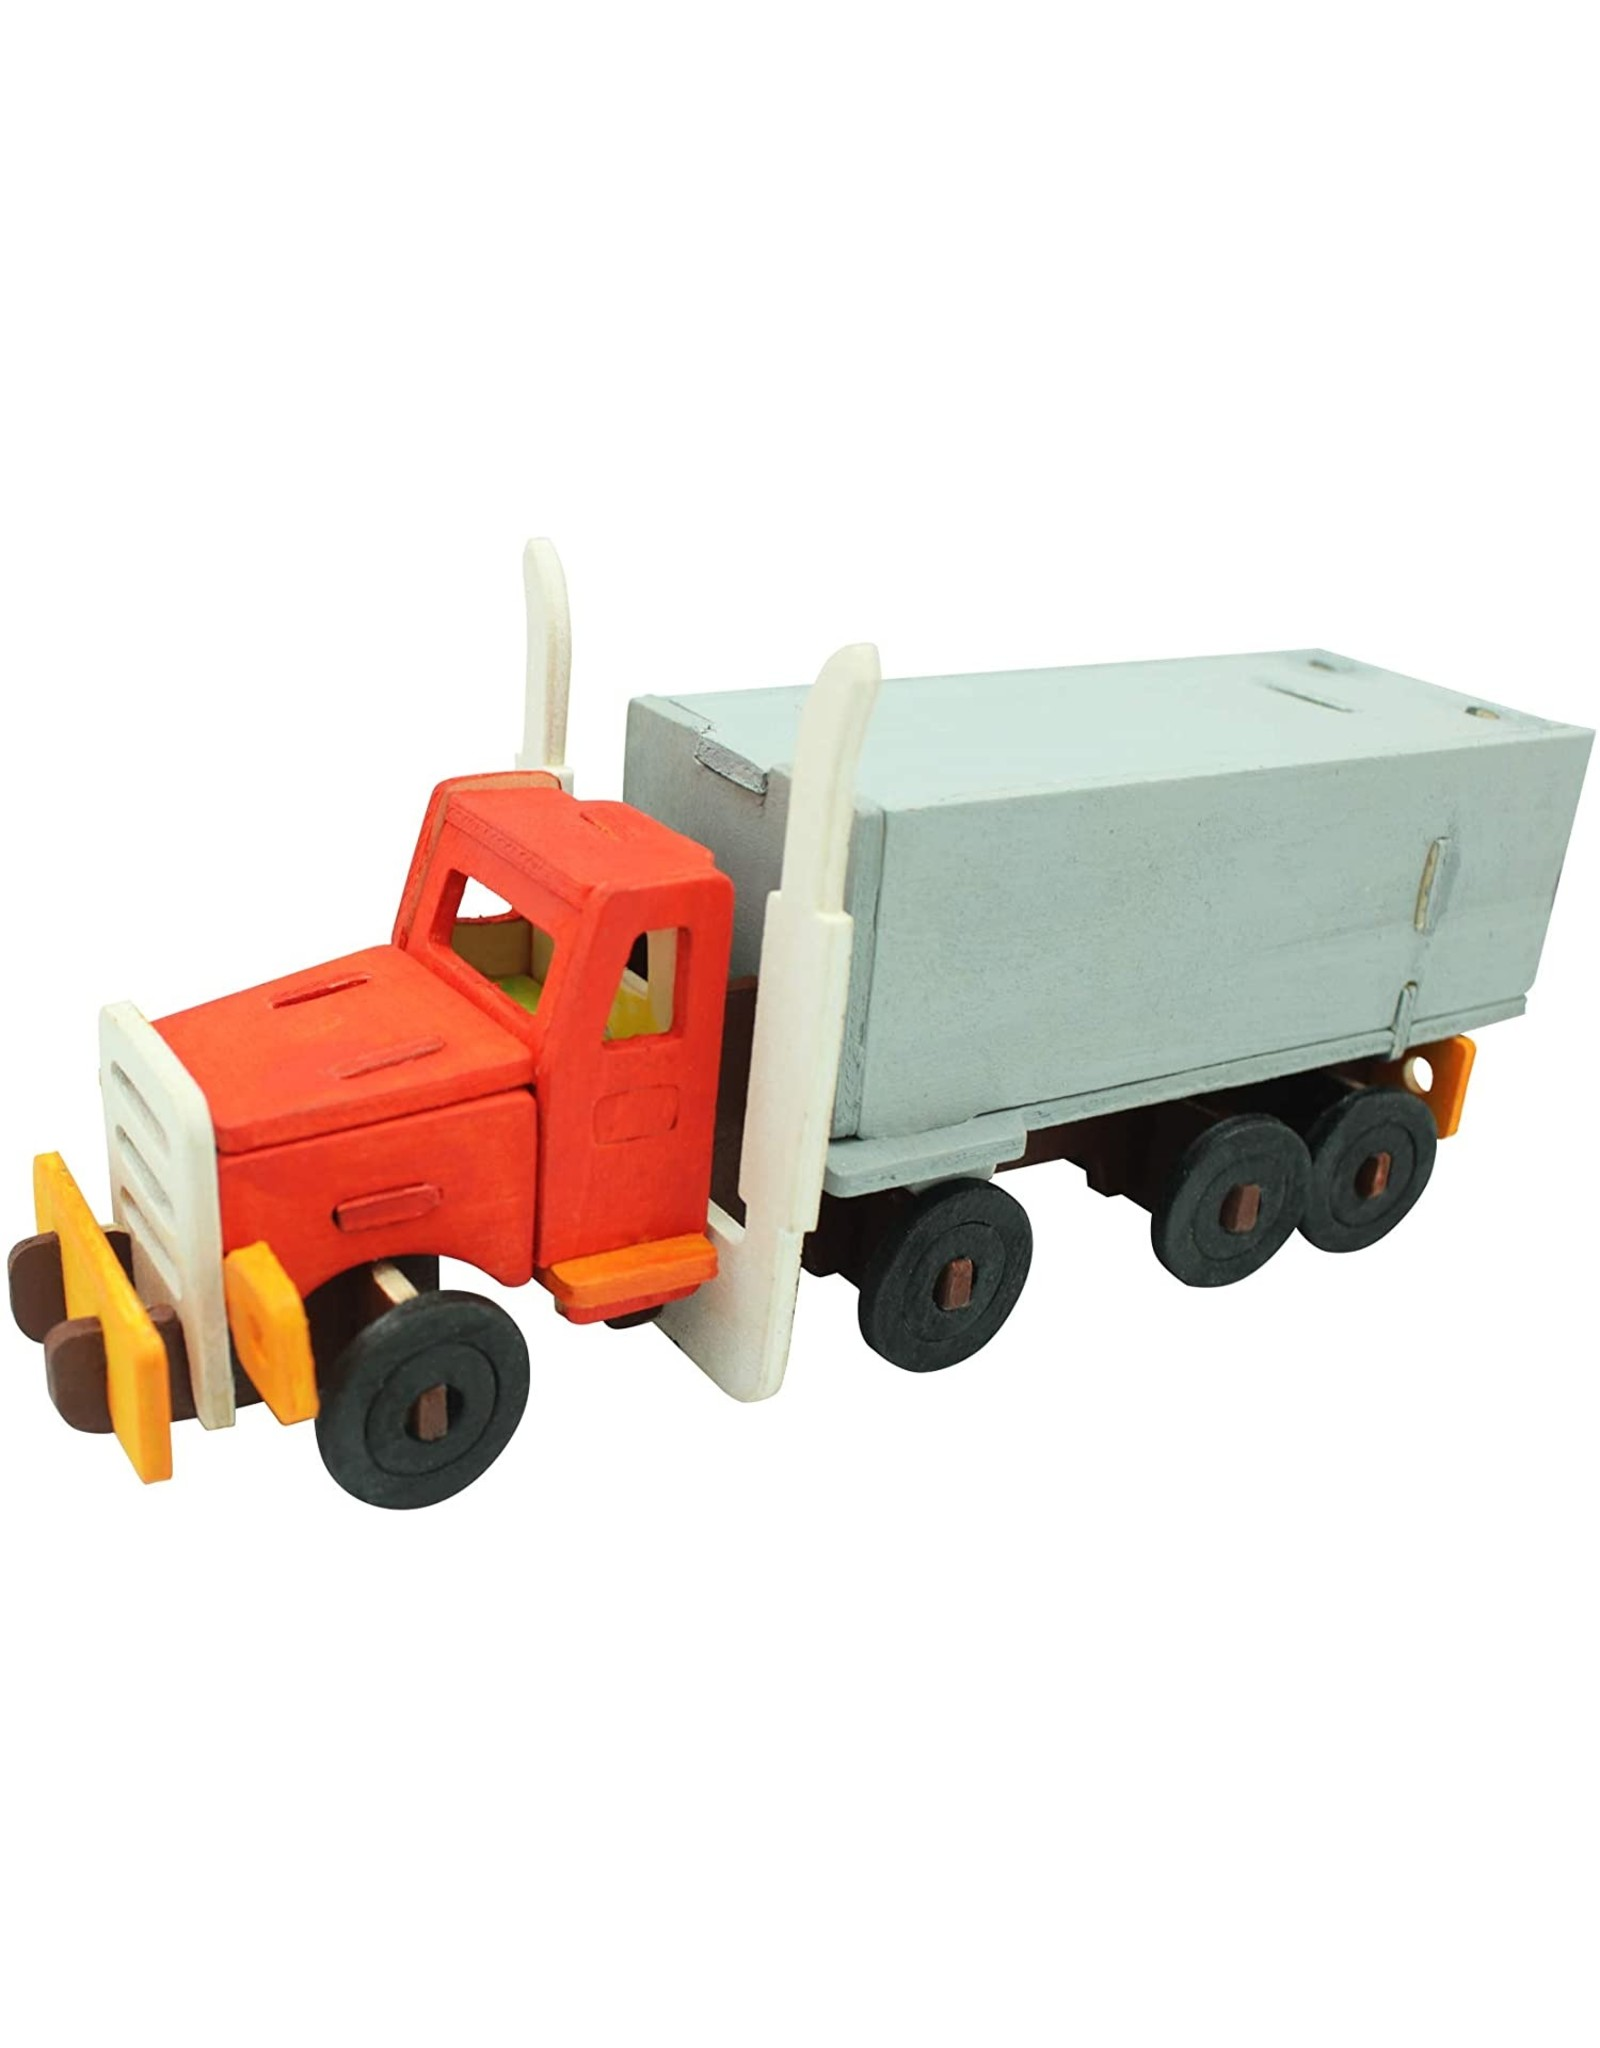 Hands Craft 3D Wooden Puzzle Paint Kit - Truck